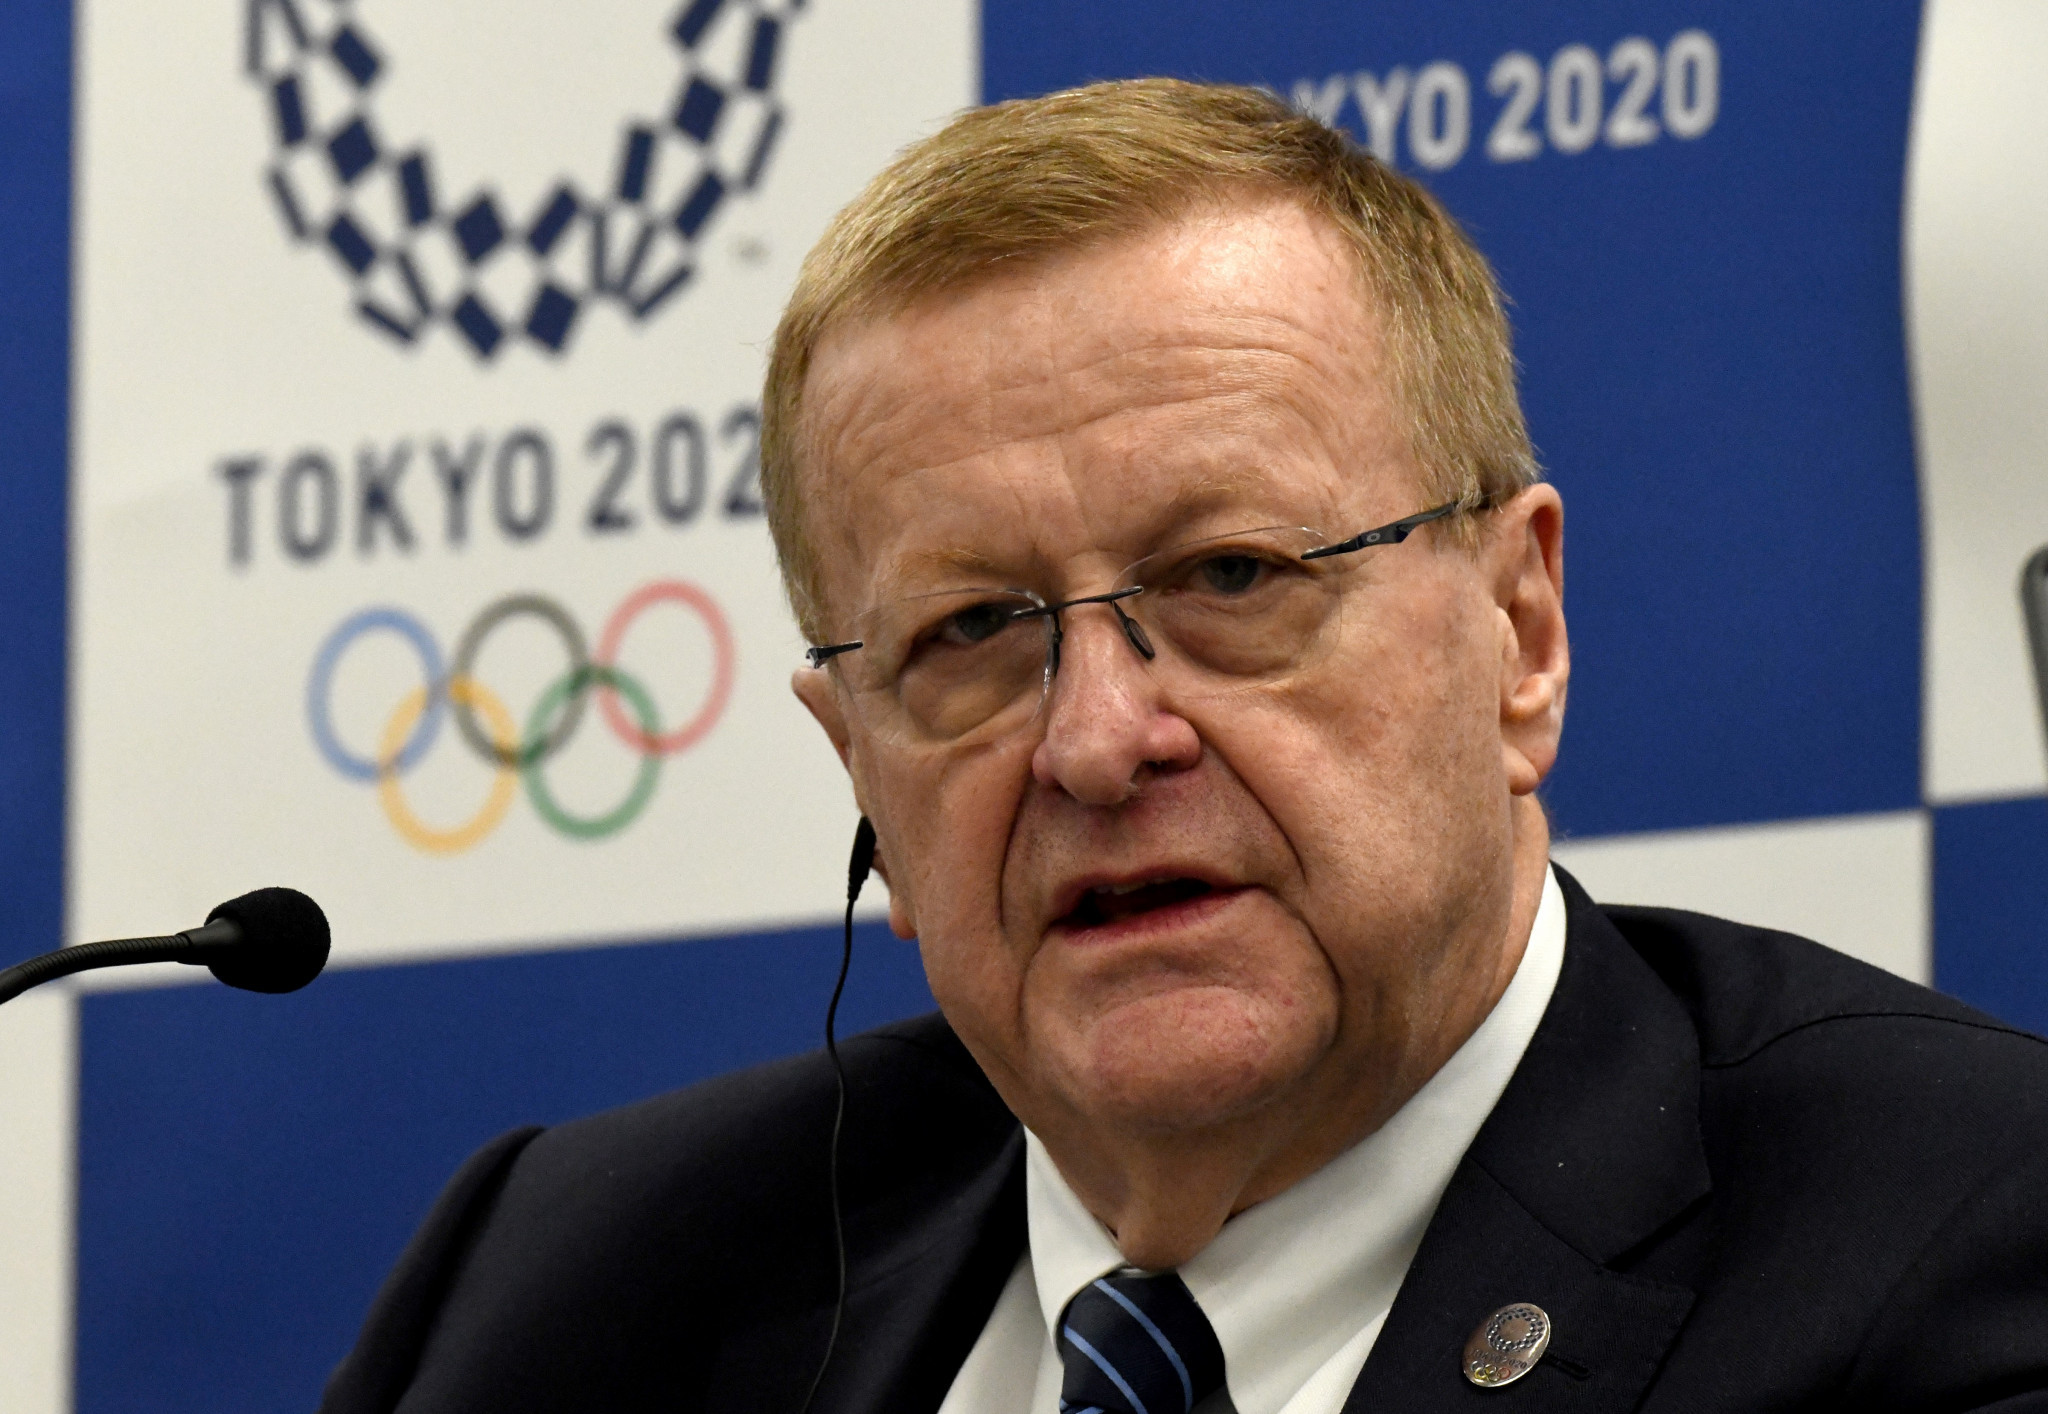 IOC confident in venue construction and engagement as Tokyo 2020 seek to finalise revised budget